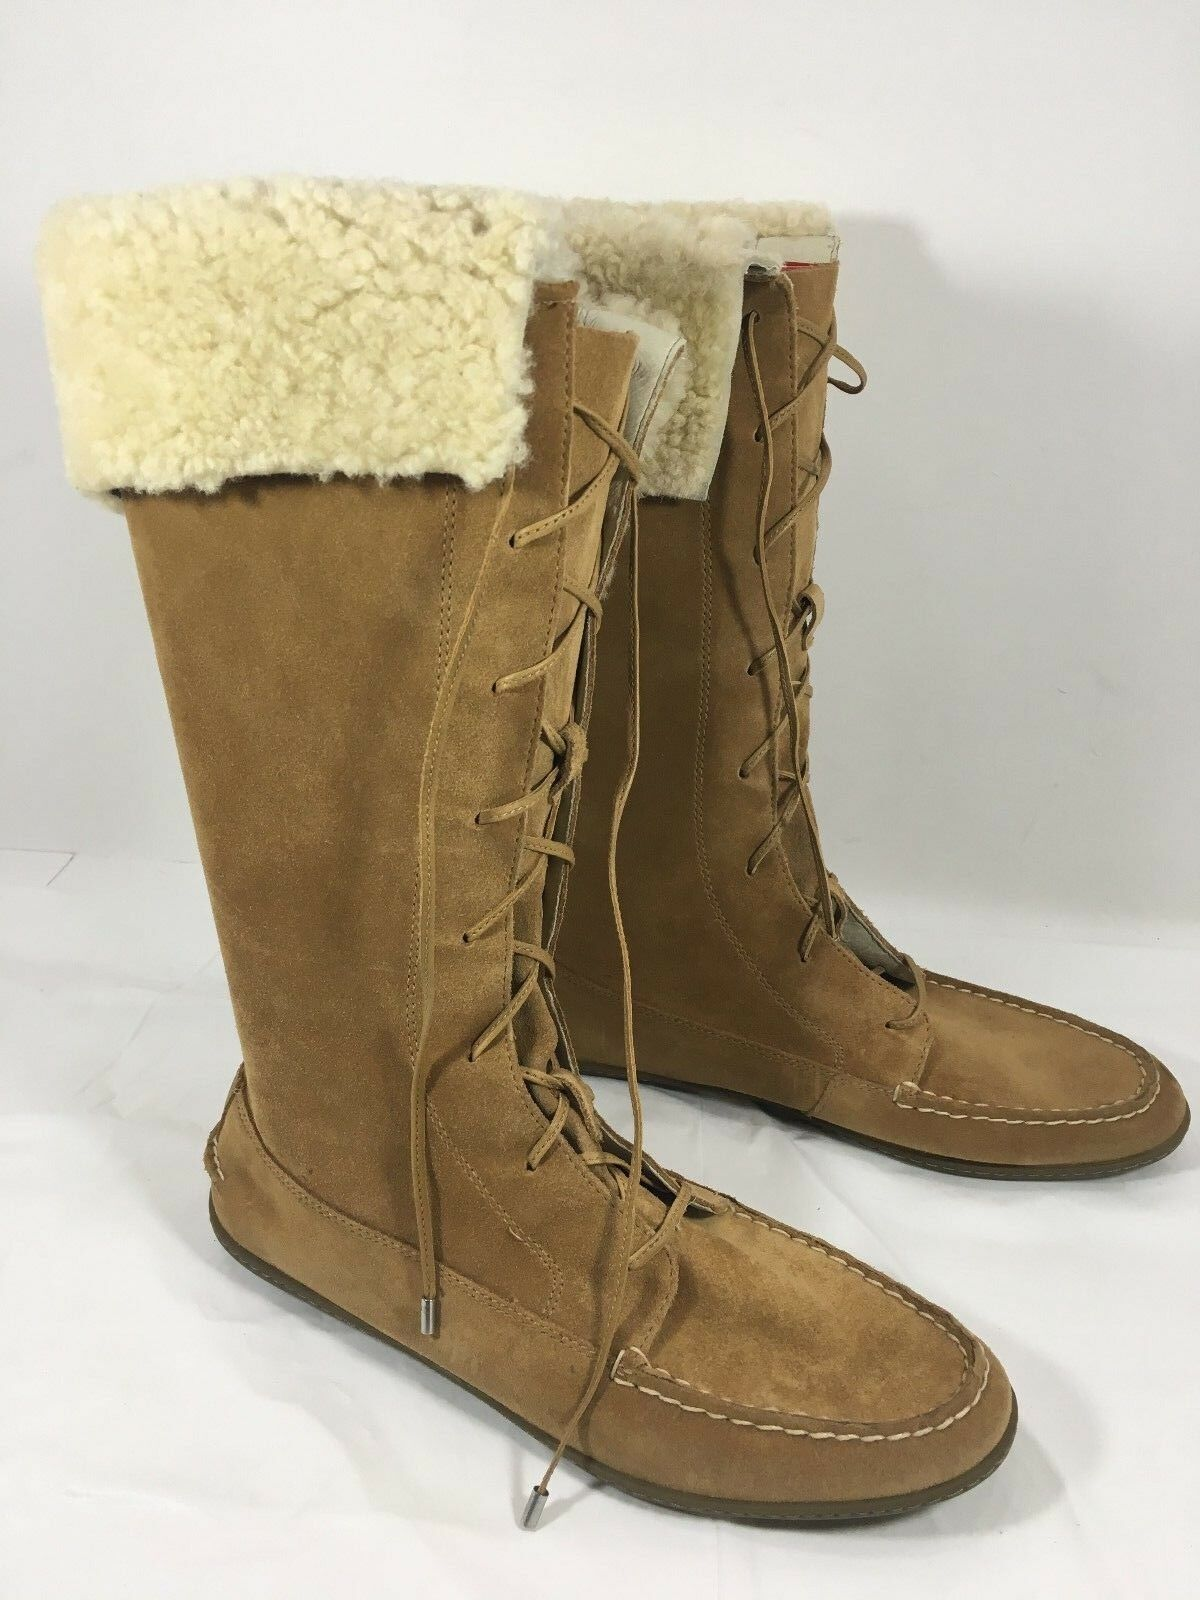 NEU Sperry Top-Sider BayShore Mid Calf Moccasin Lace up Shearling Stiefel 8.5